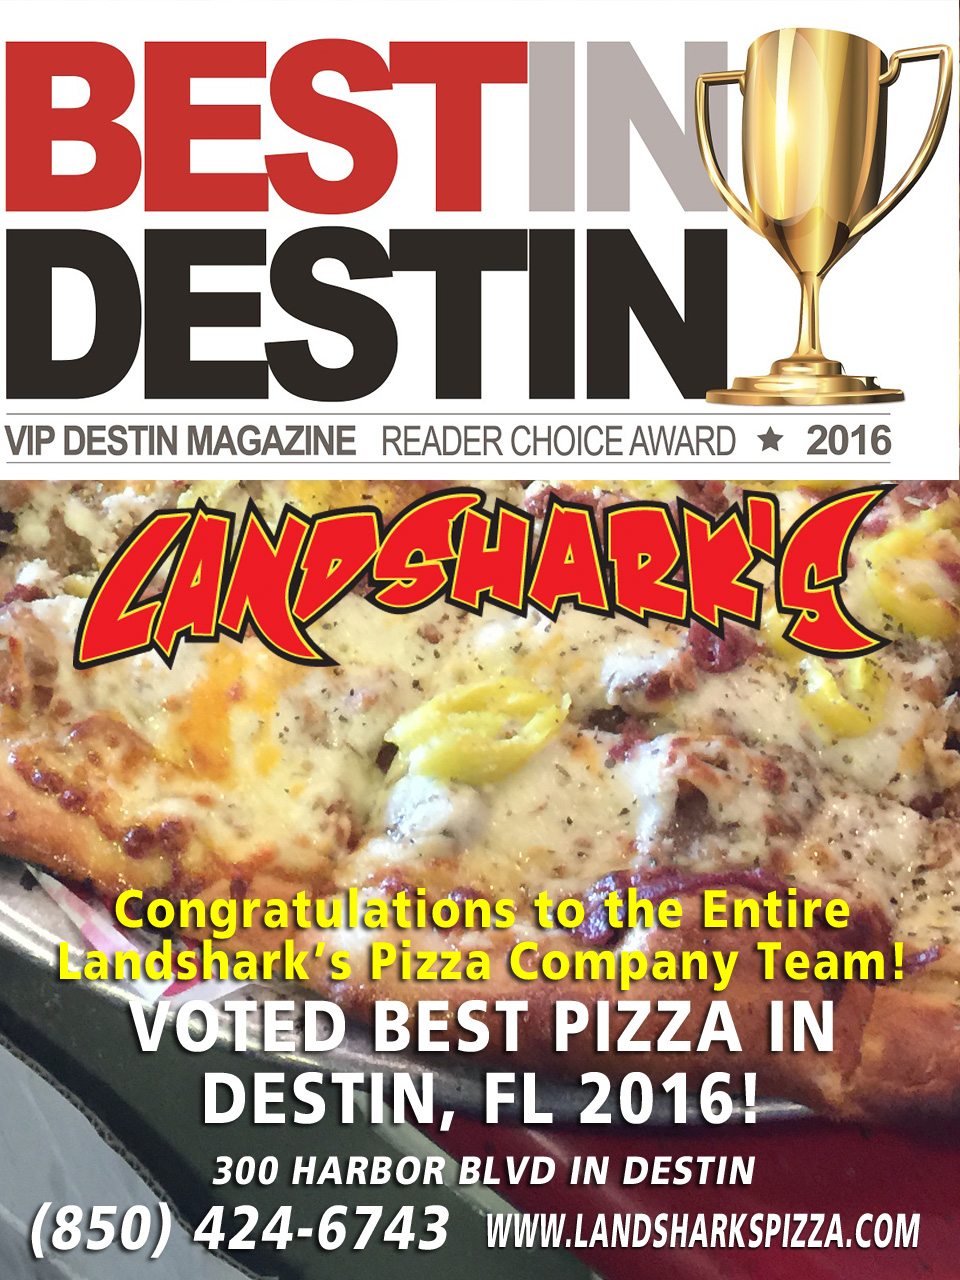 VOTED BEST PIZZA IN DESTIN FL 2016 Landsharks Pizza Co